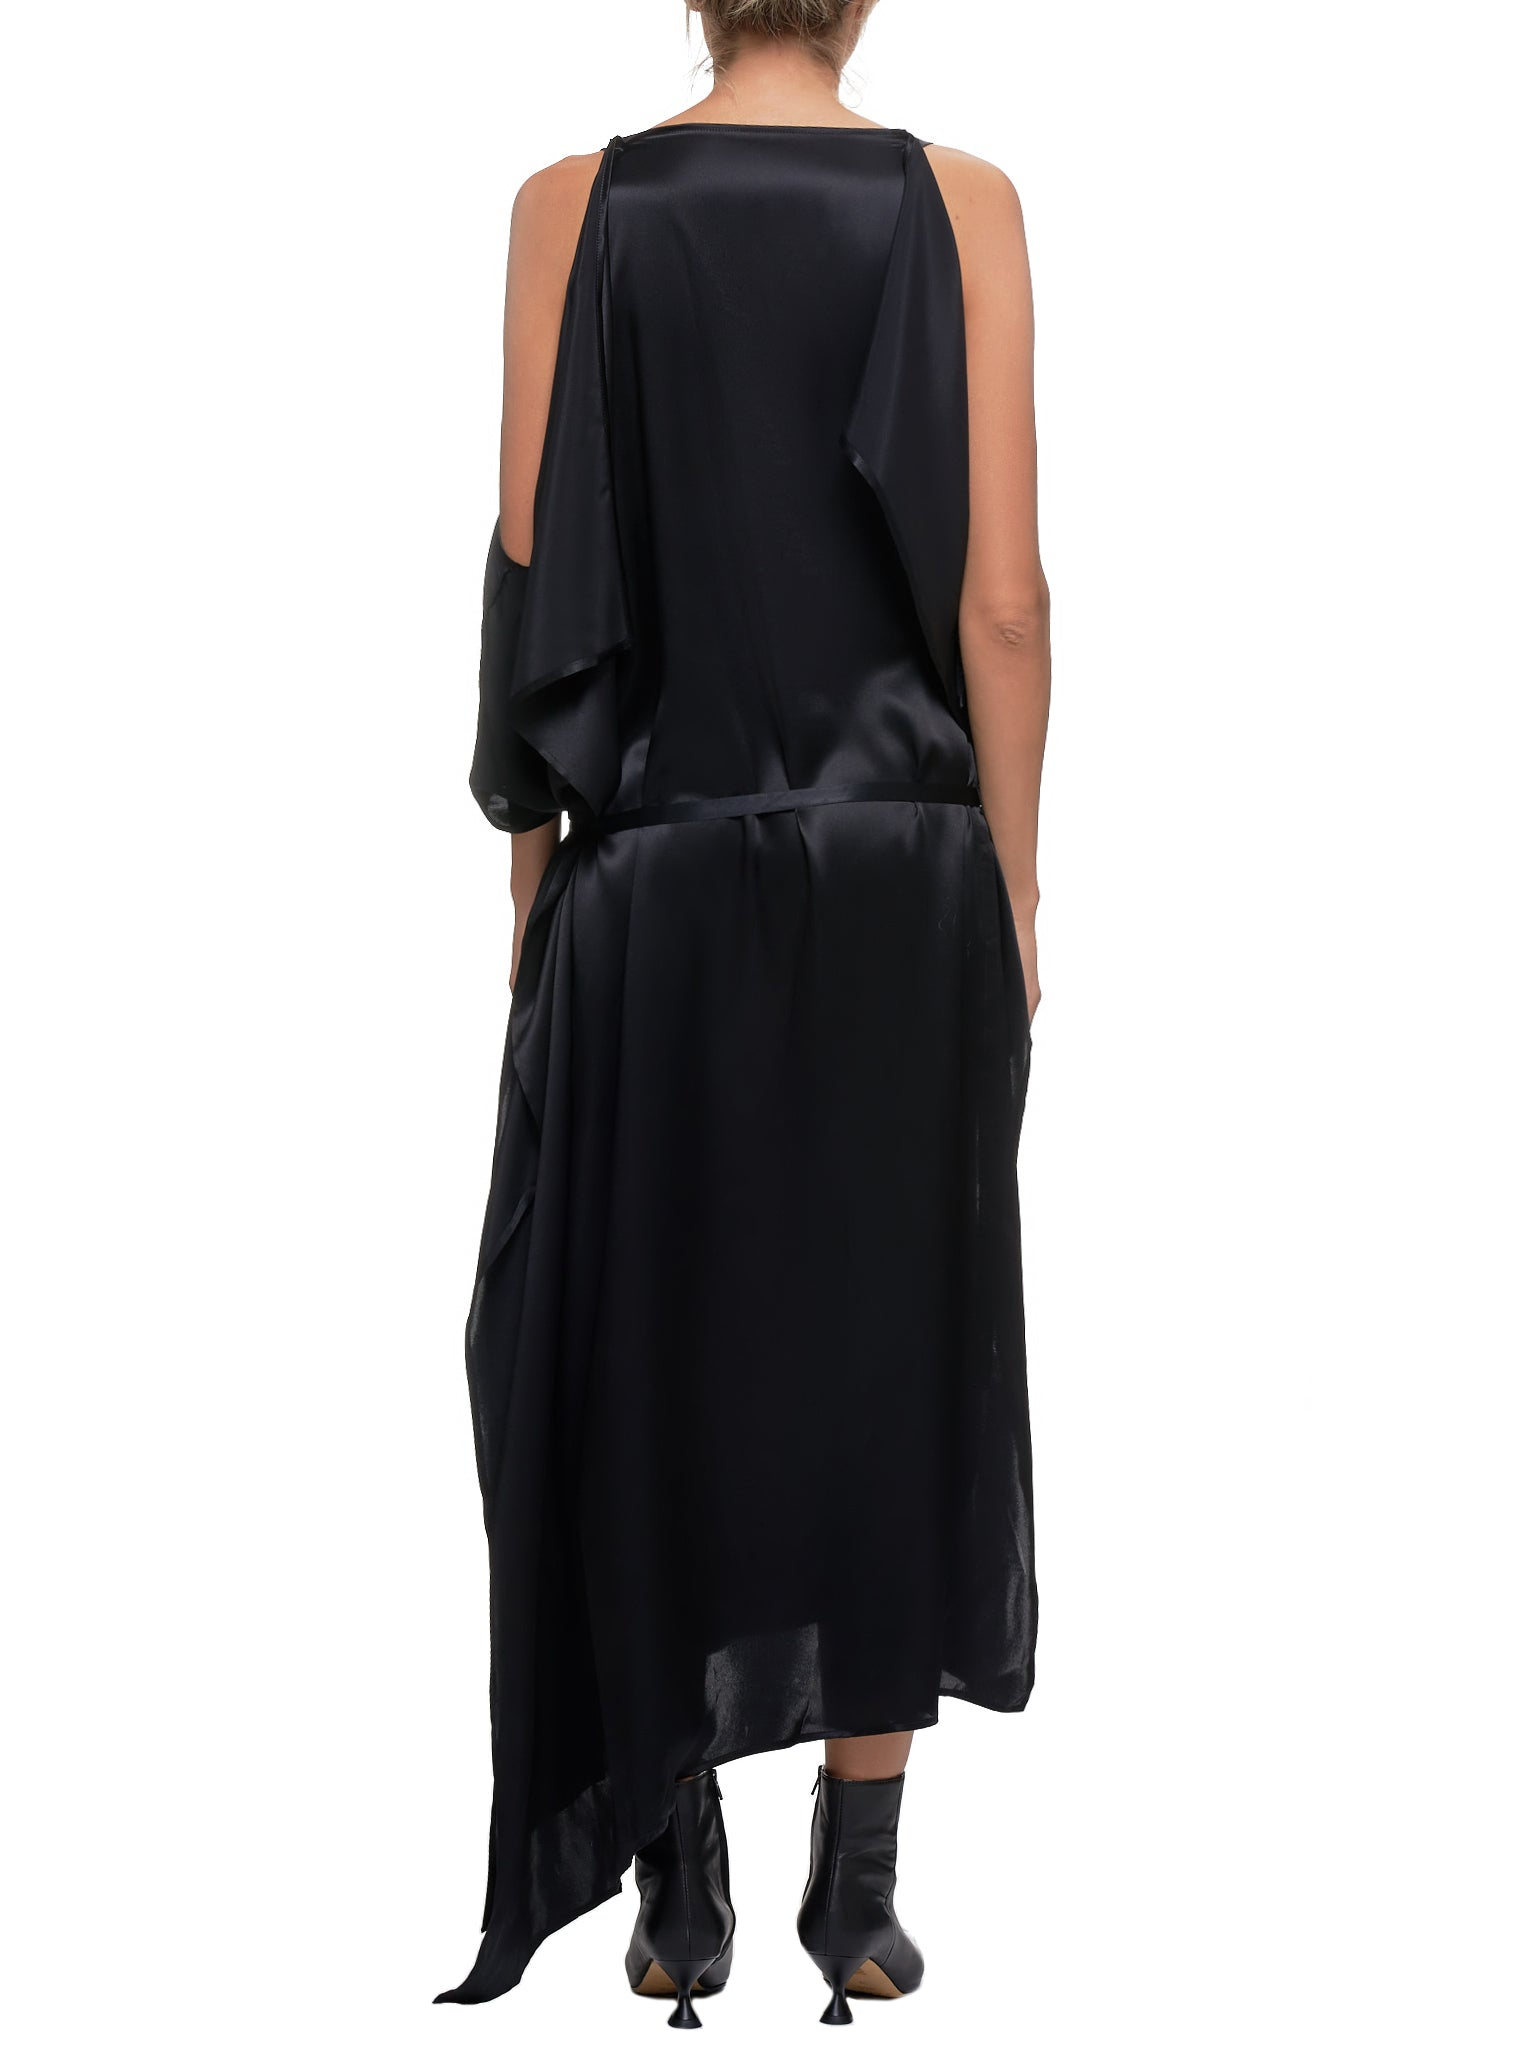 Ann Demeulemeester Dress - Hlorenzo Back